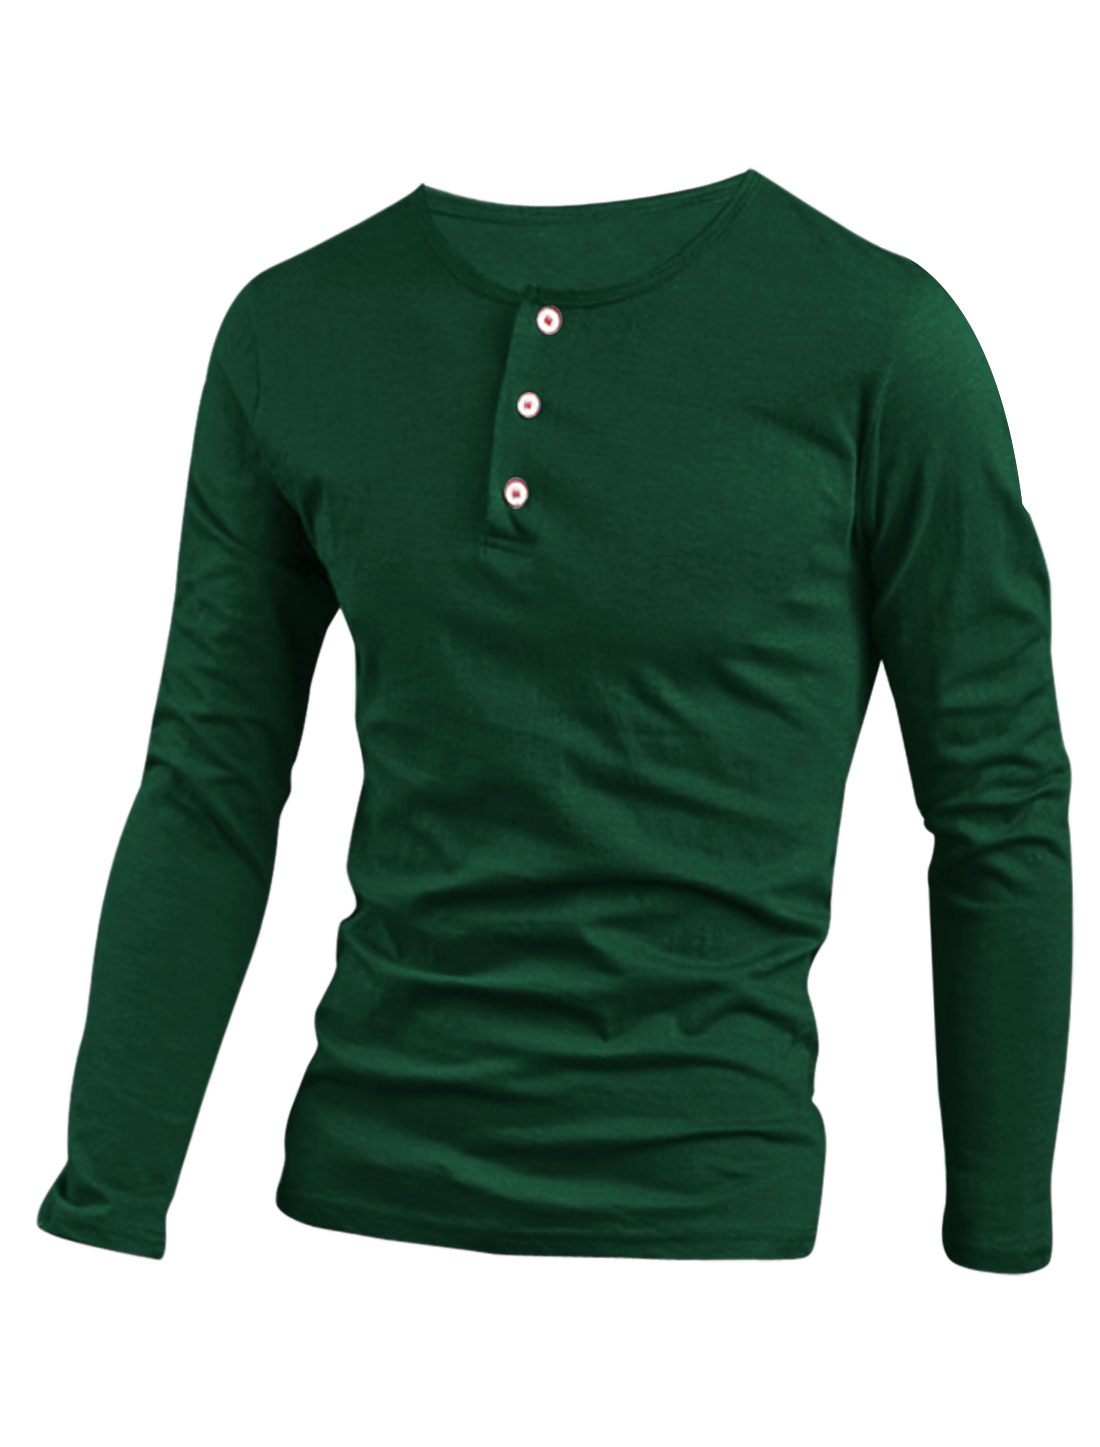 Men Stretchy 1/4 Placket Pullover Design Henley Shirt Dark Green M